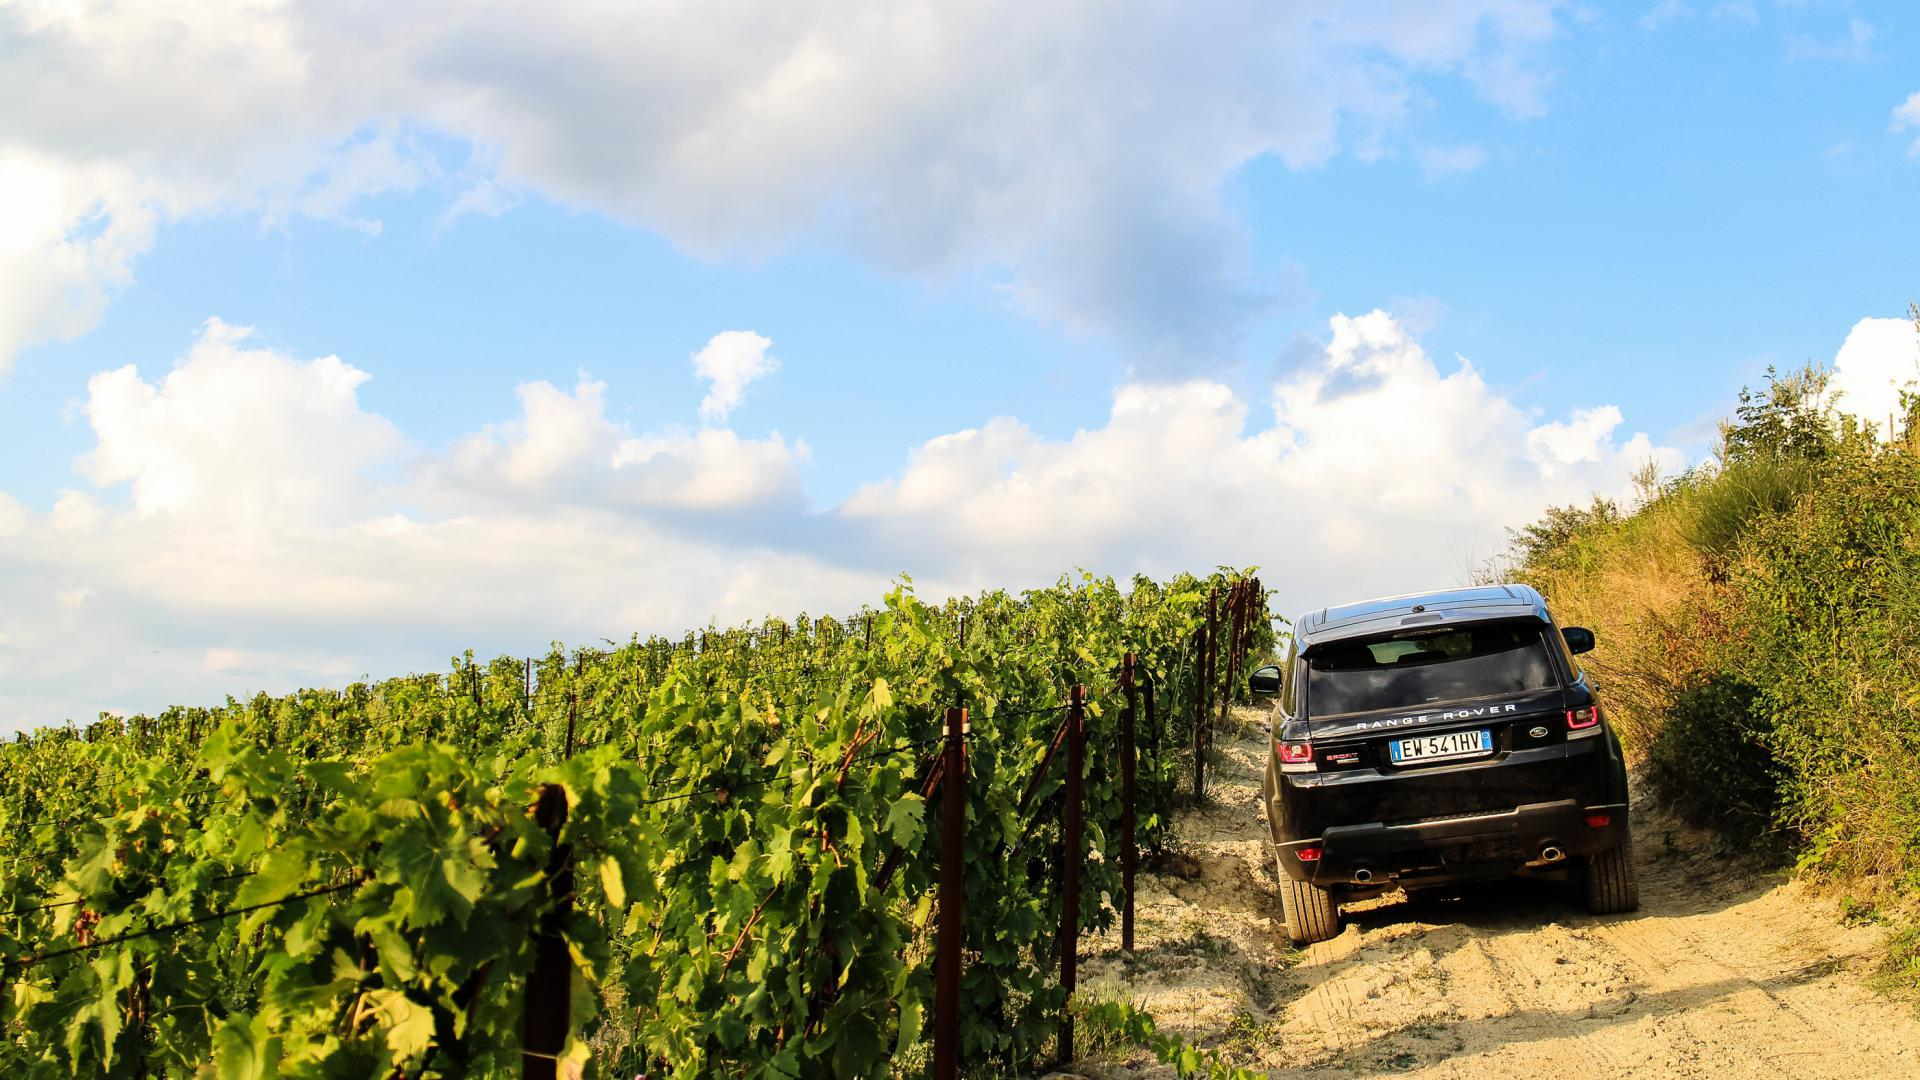 Private tours in Range Rover sport